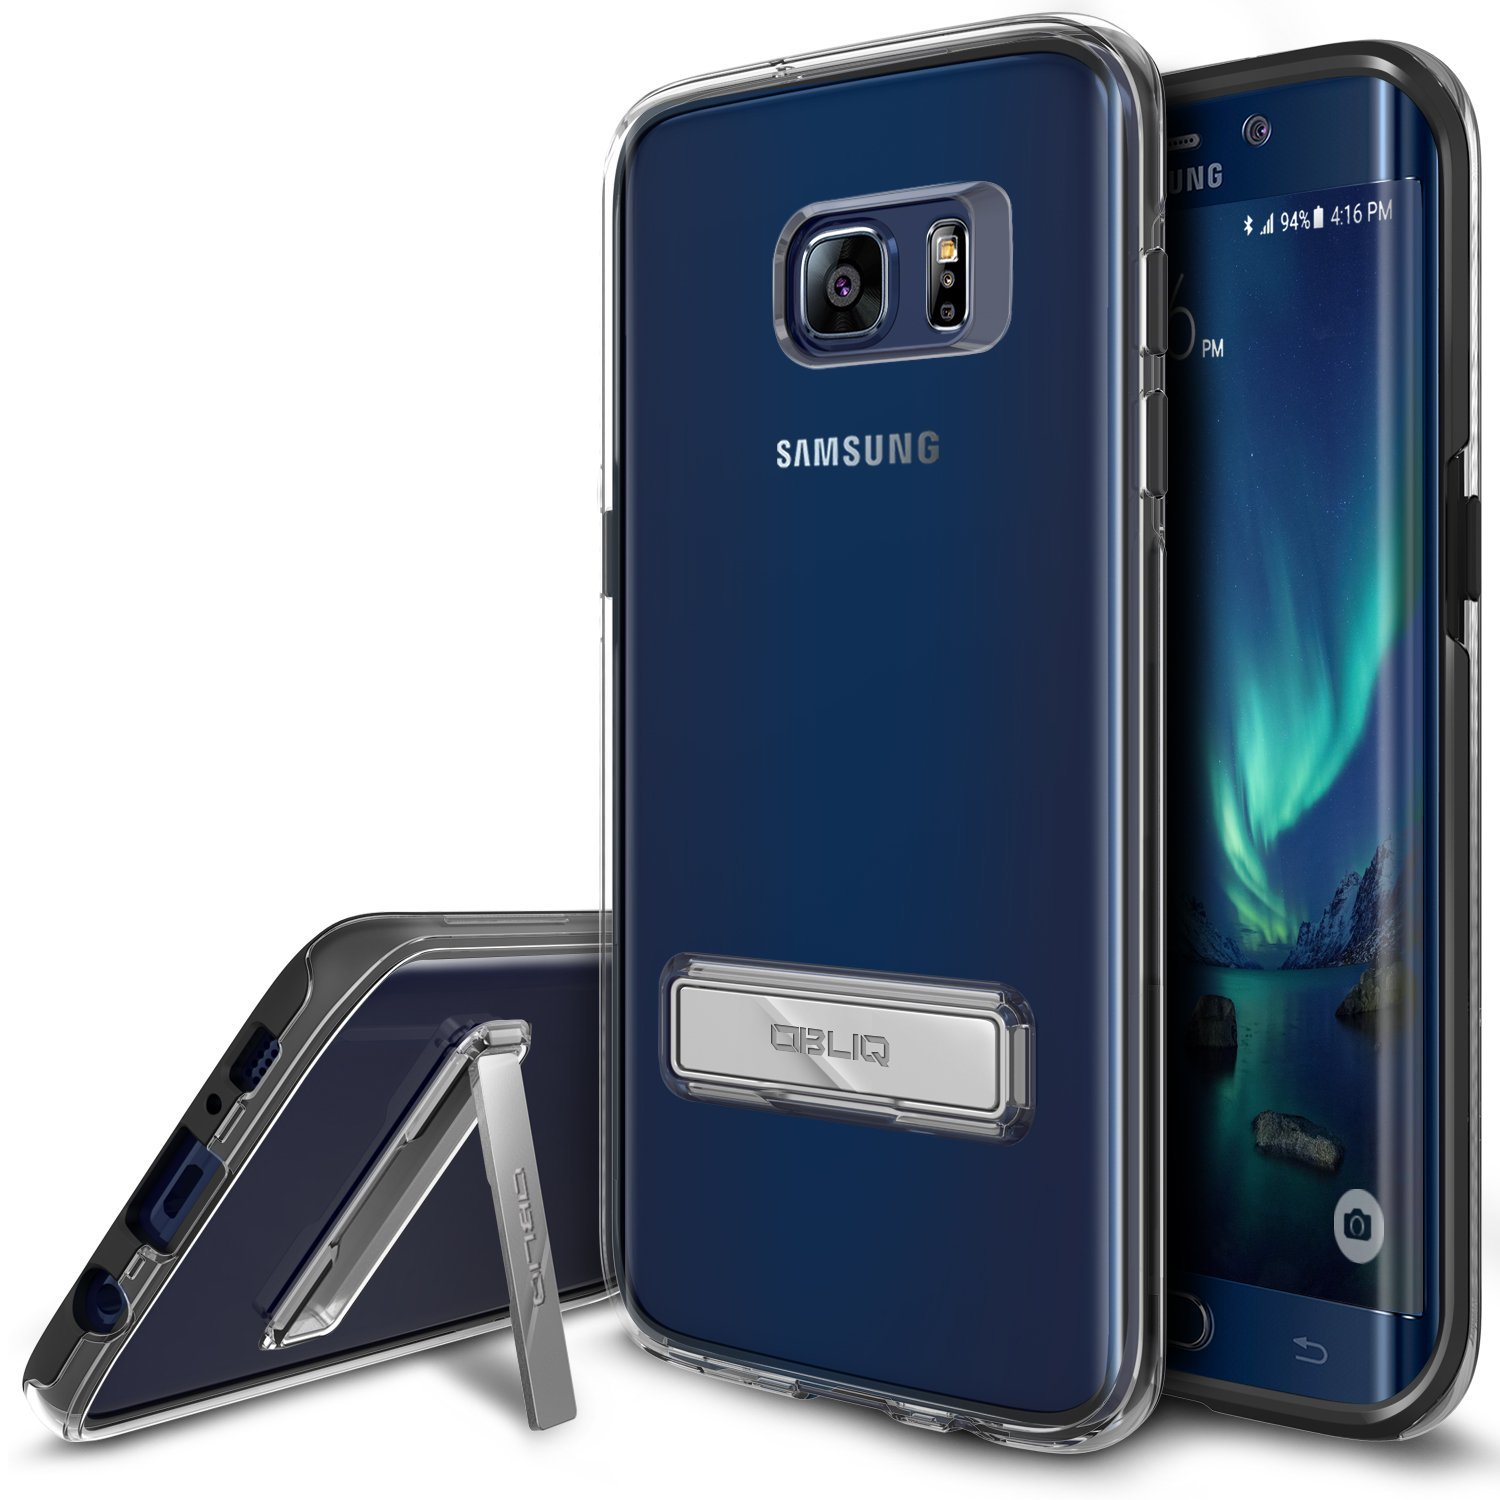 promo code 4f285 78120 Top 5 Best Cases for Galaxy S7 Edge